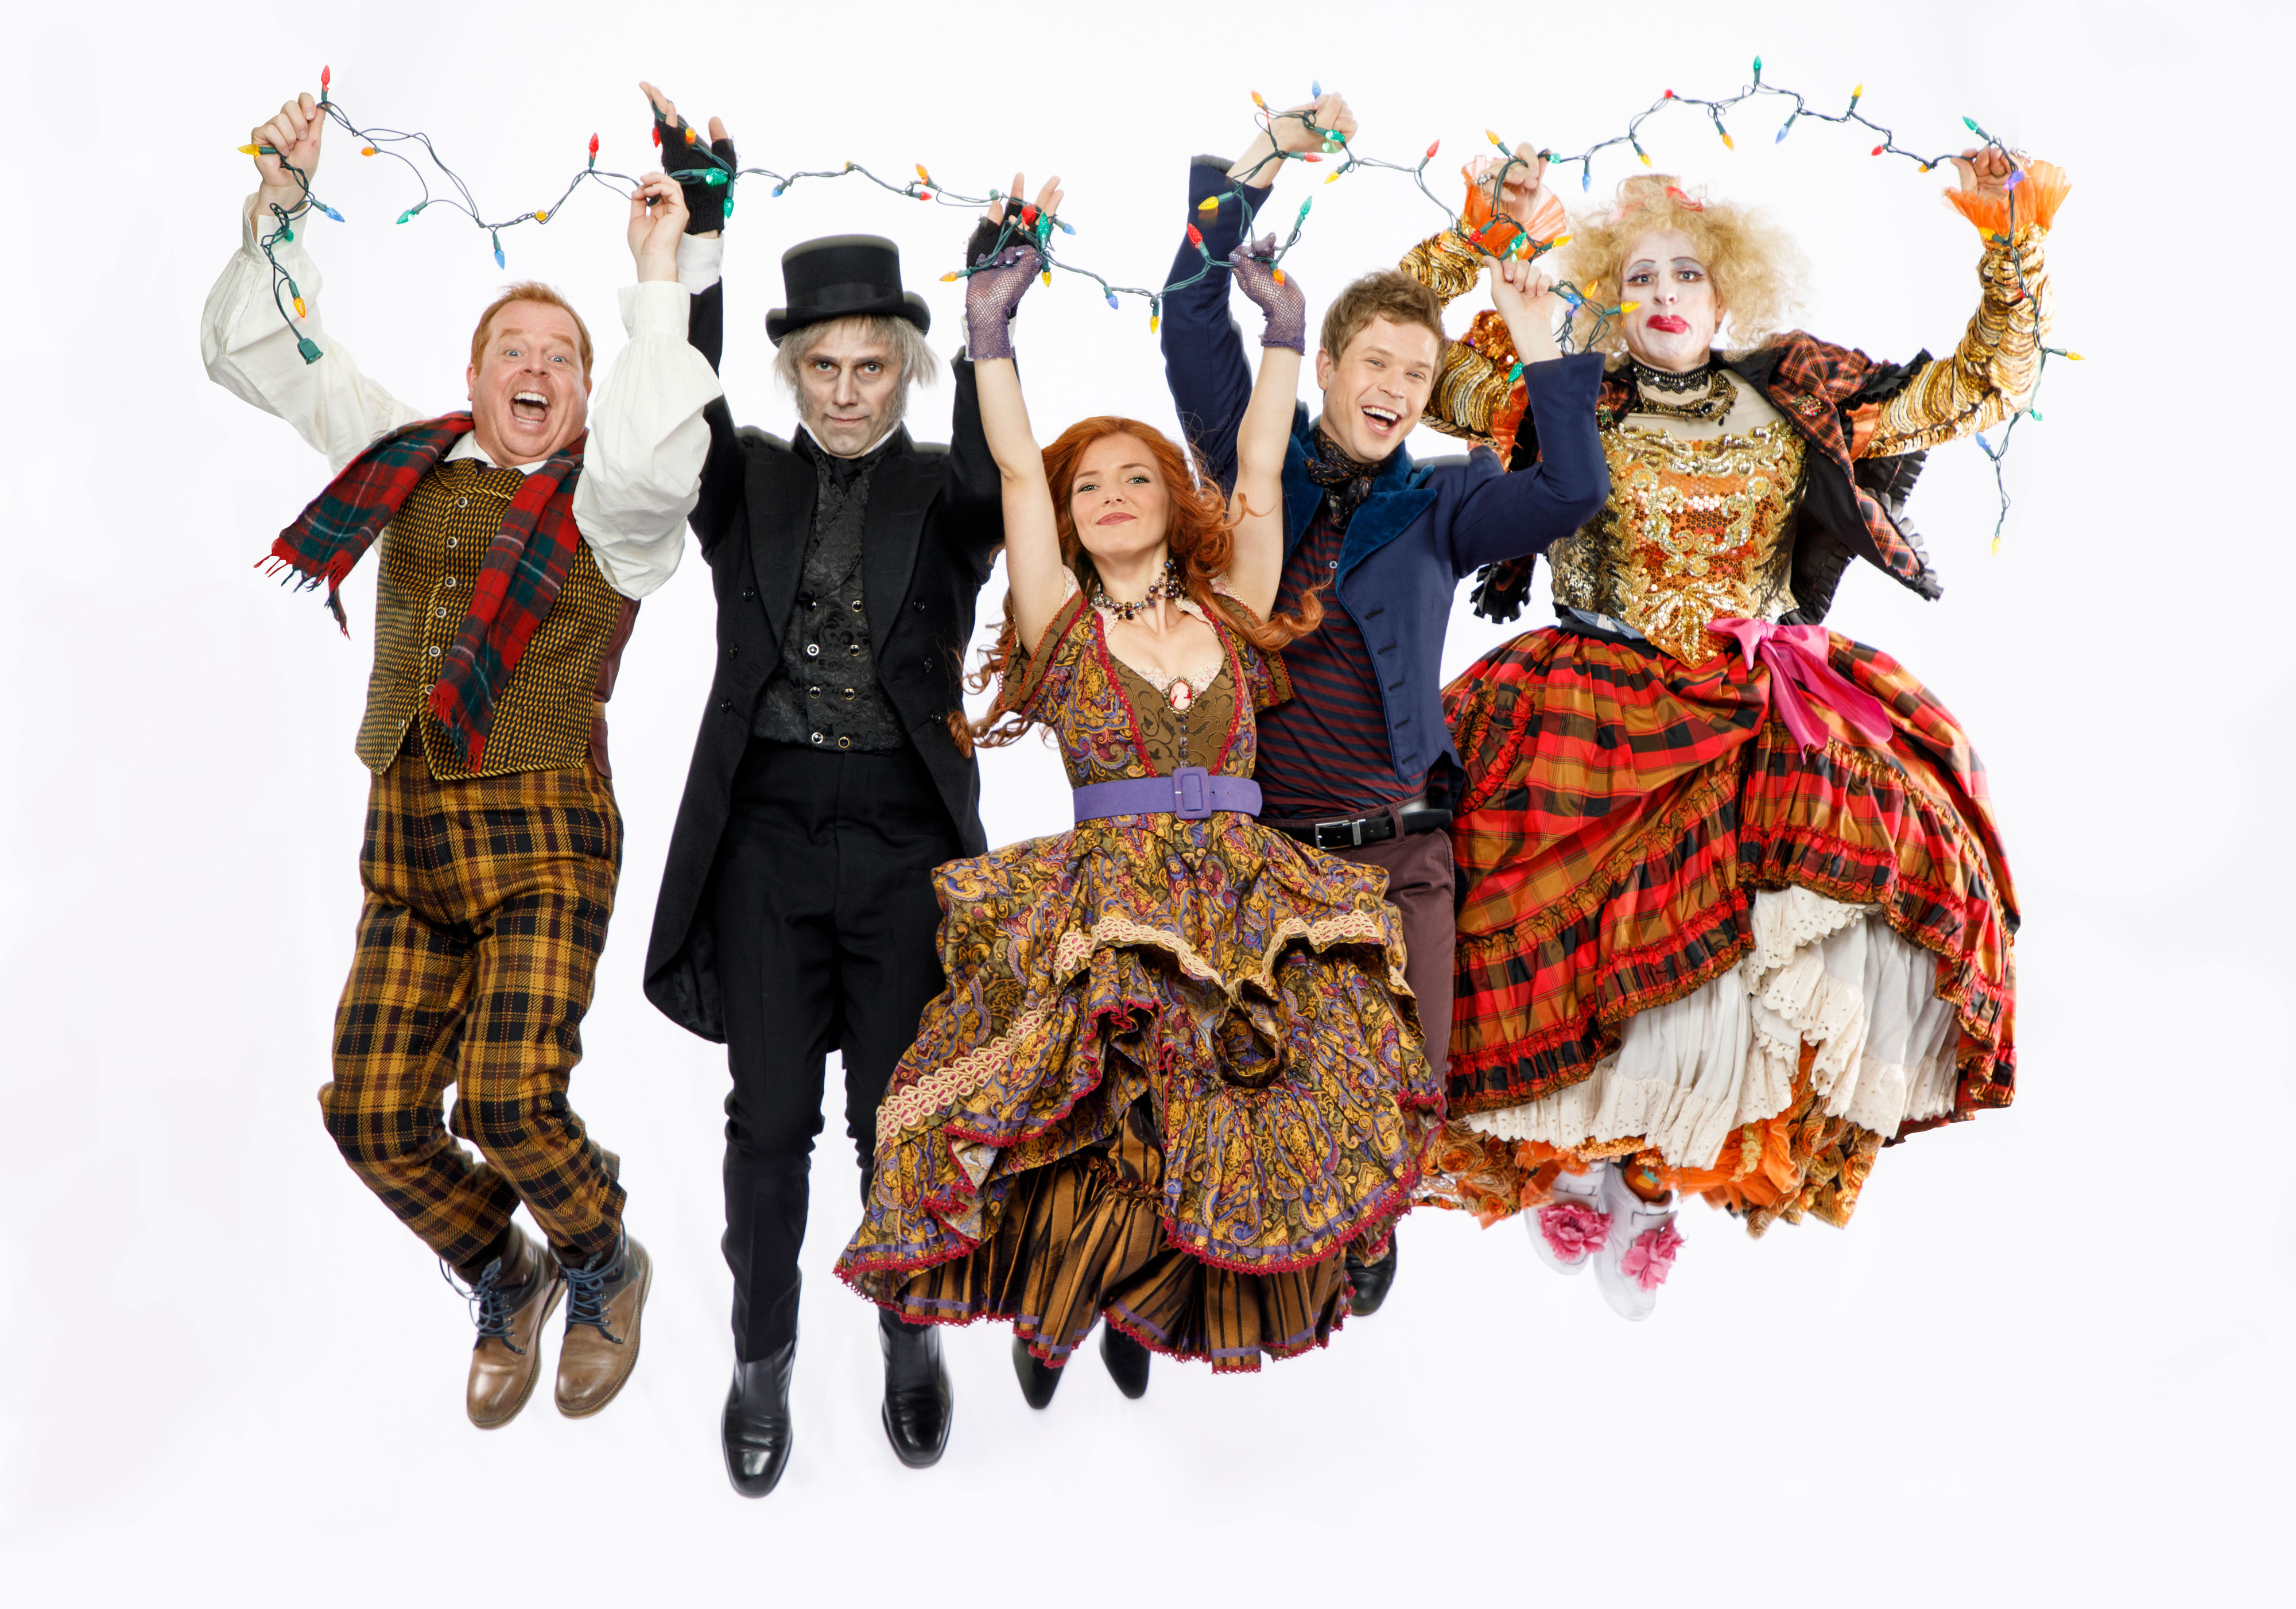 PAST EVENT: A Christmas Carol – Ross Petty Productions (Elgin Theatre, Toronto) November 24 – January 6, 2017